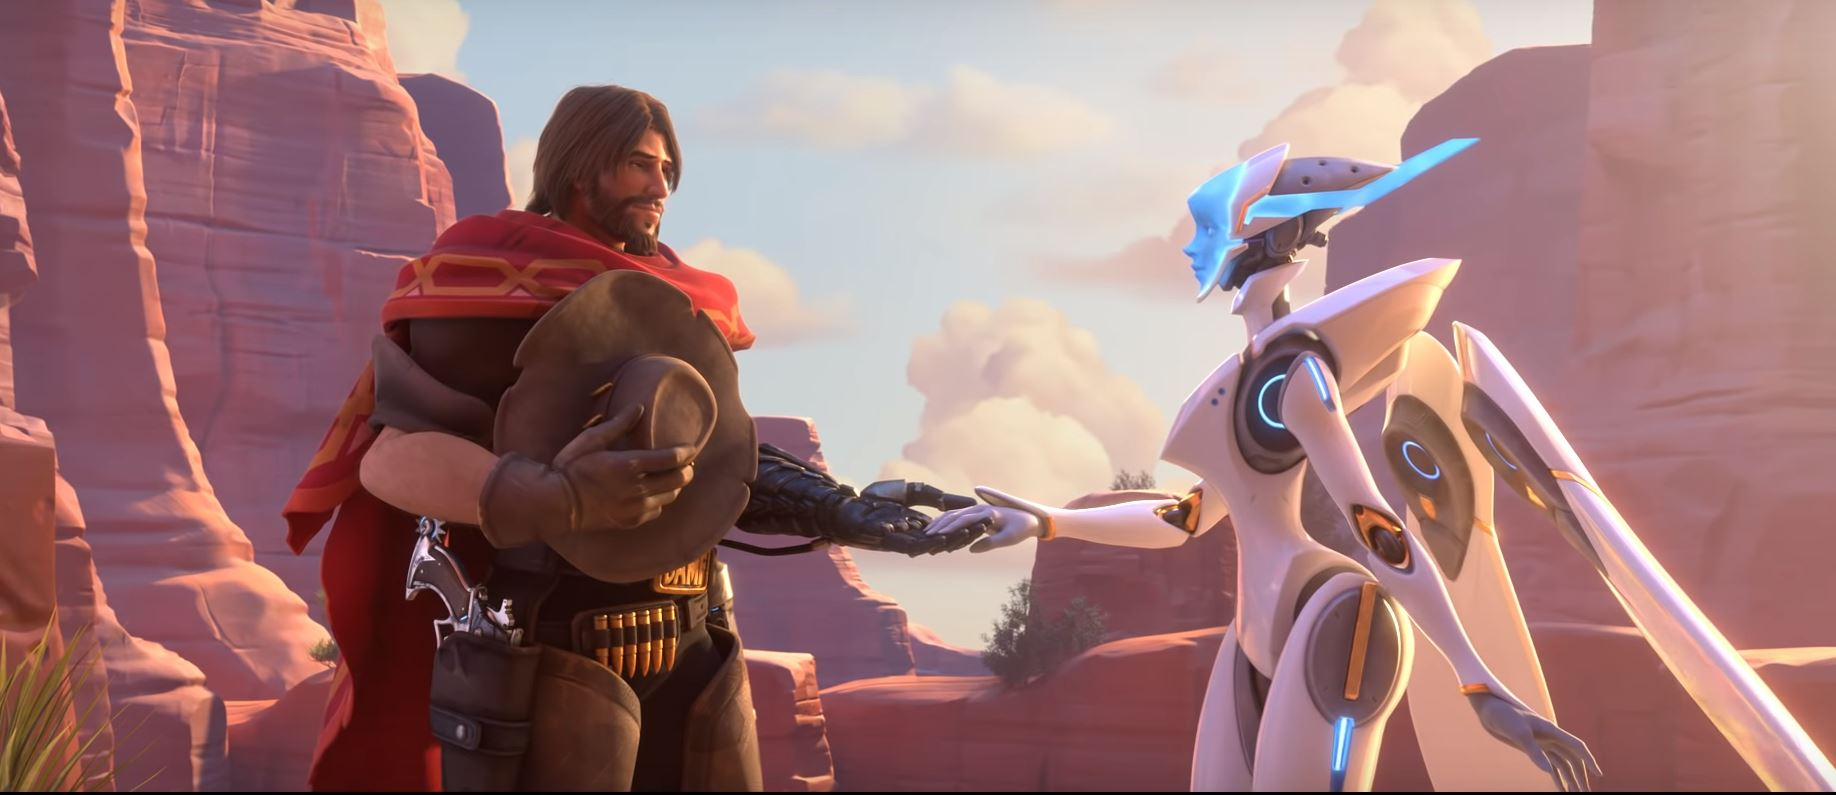 Overwatch Has Six New Heroes In Development And One Might